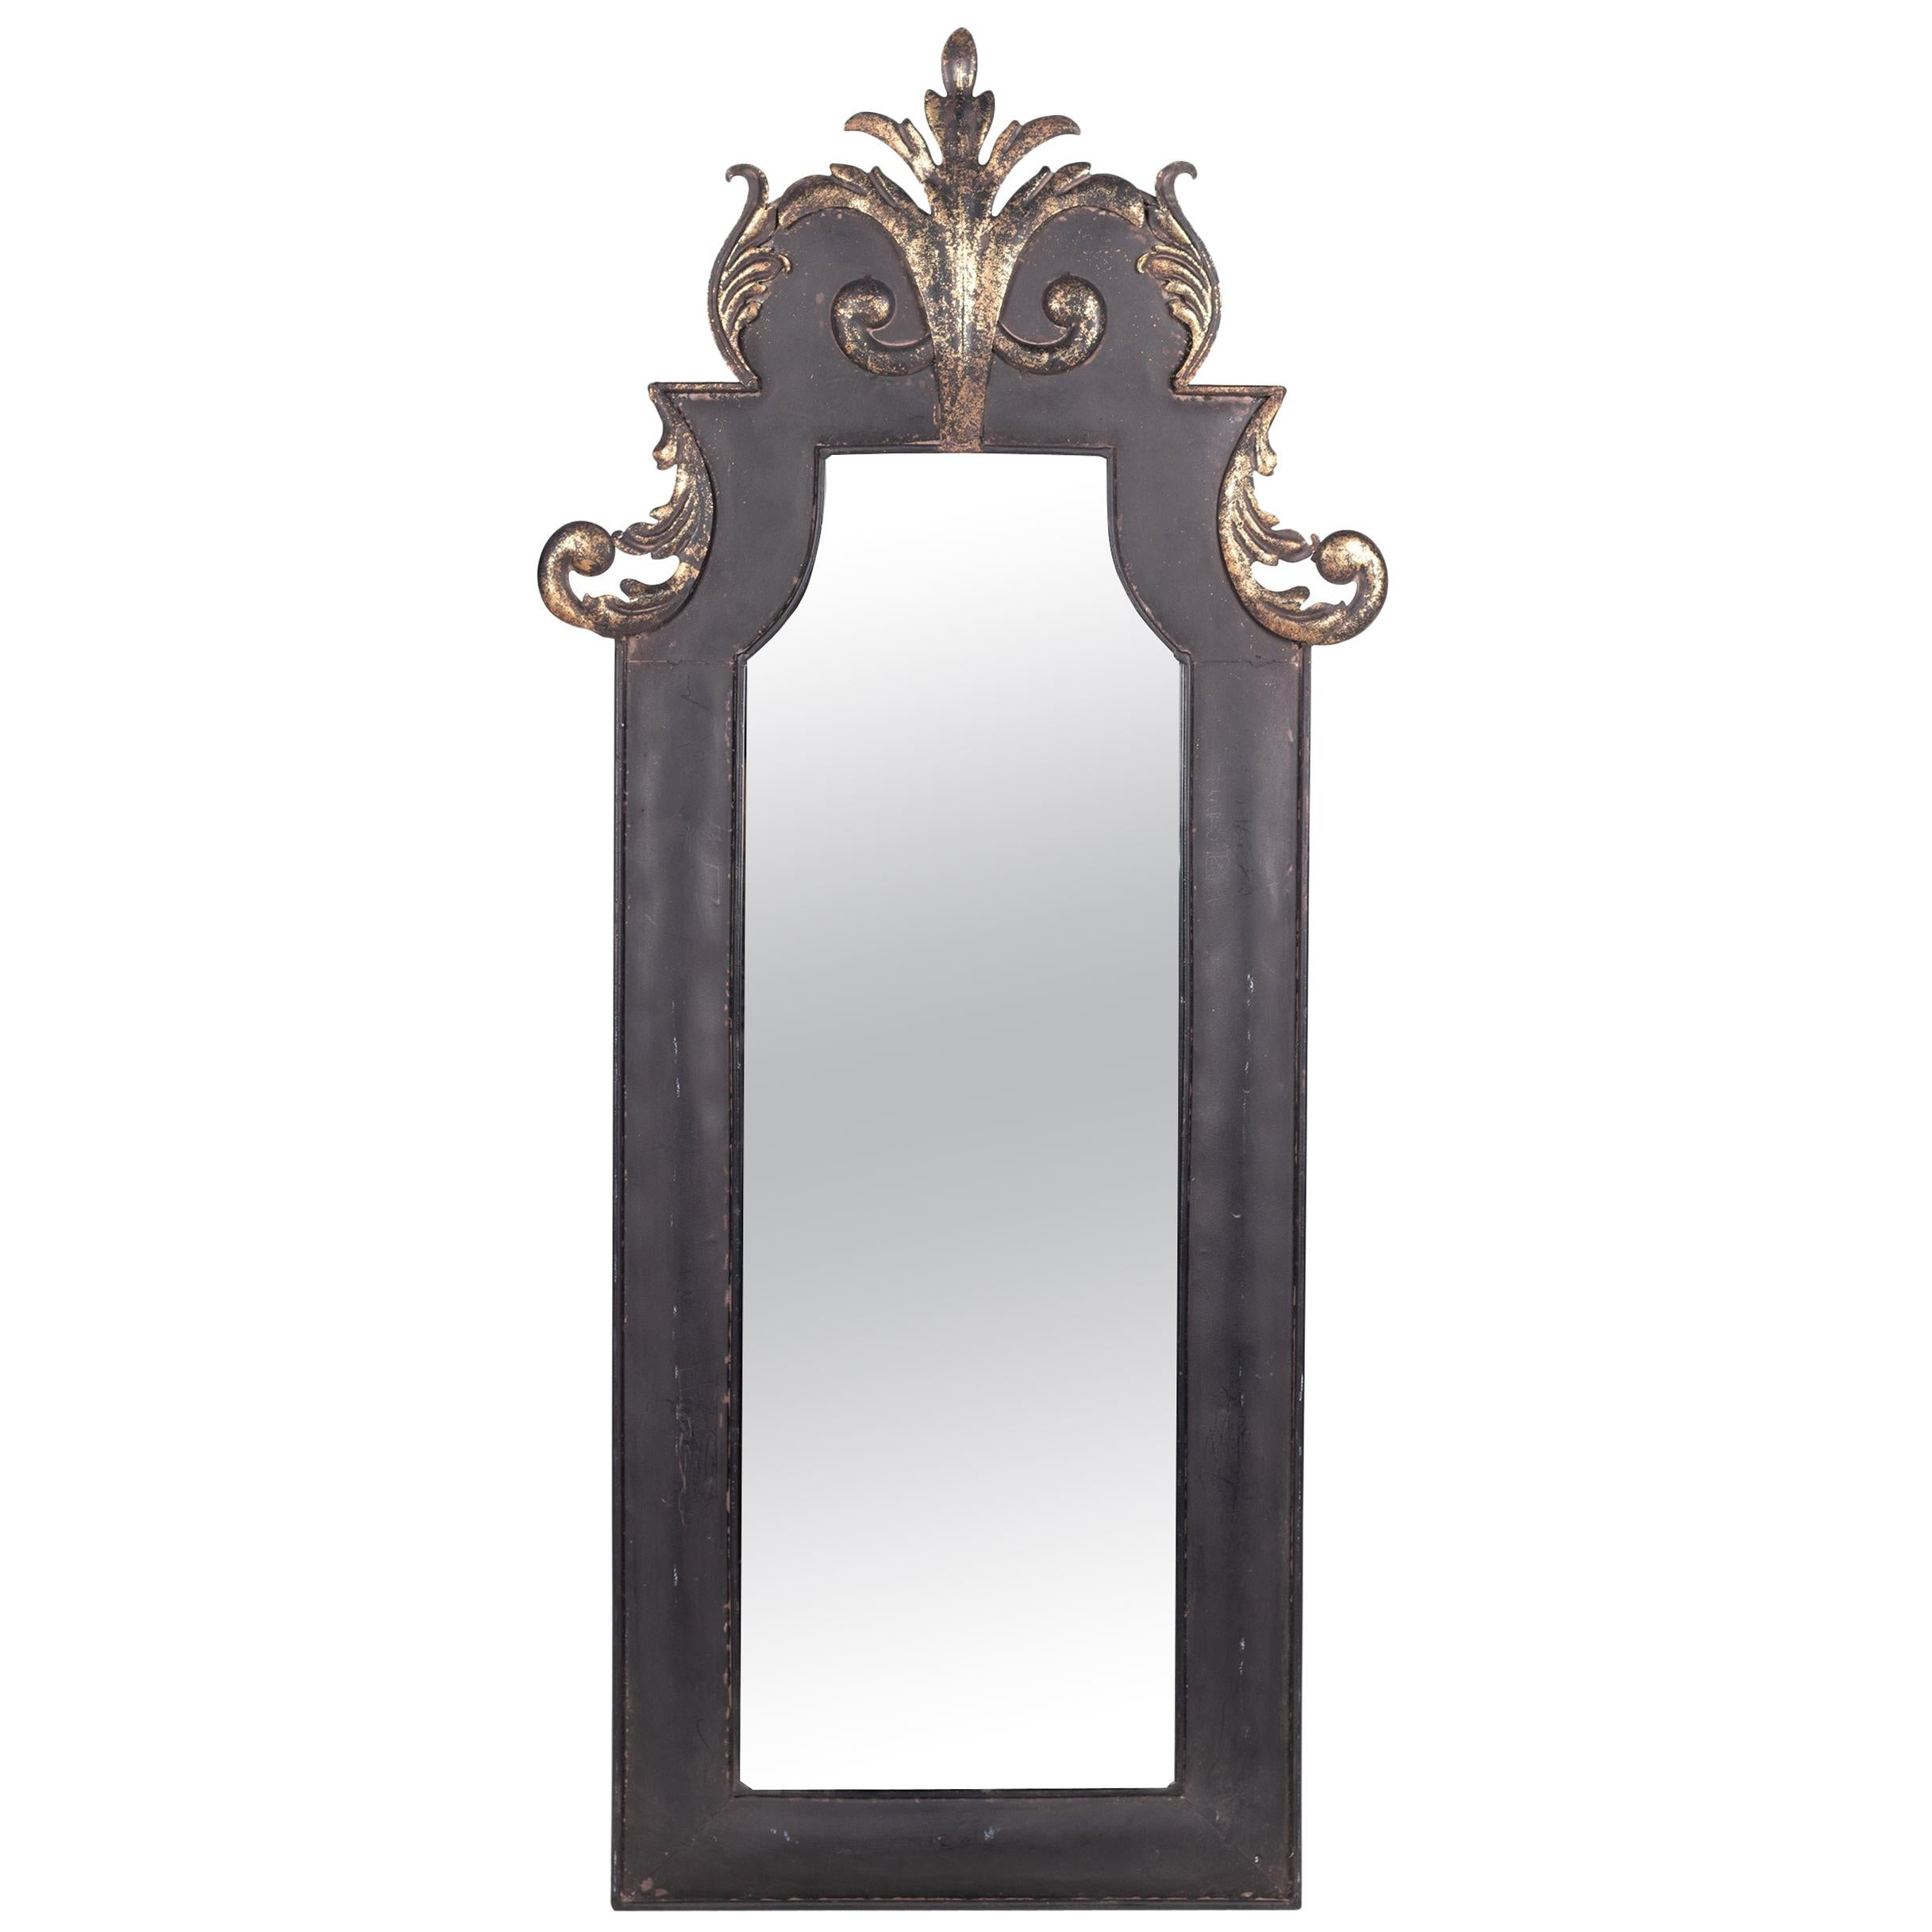 1980s French Wall Metallic Painted Mirror